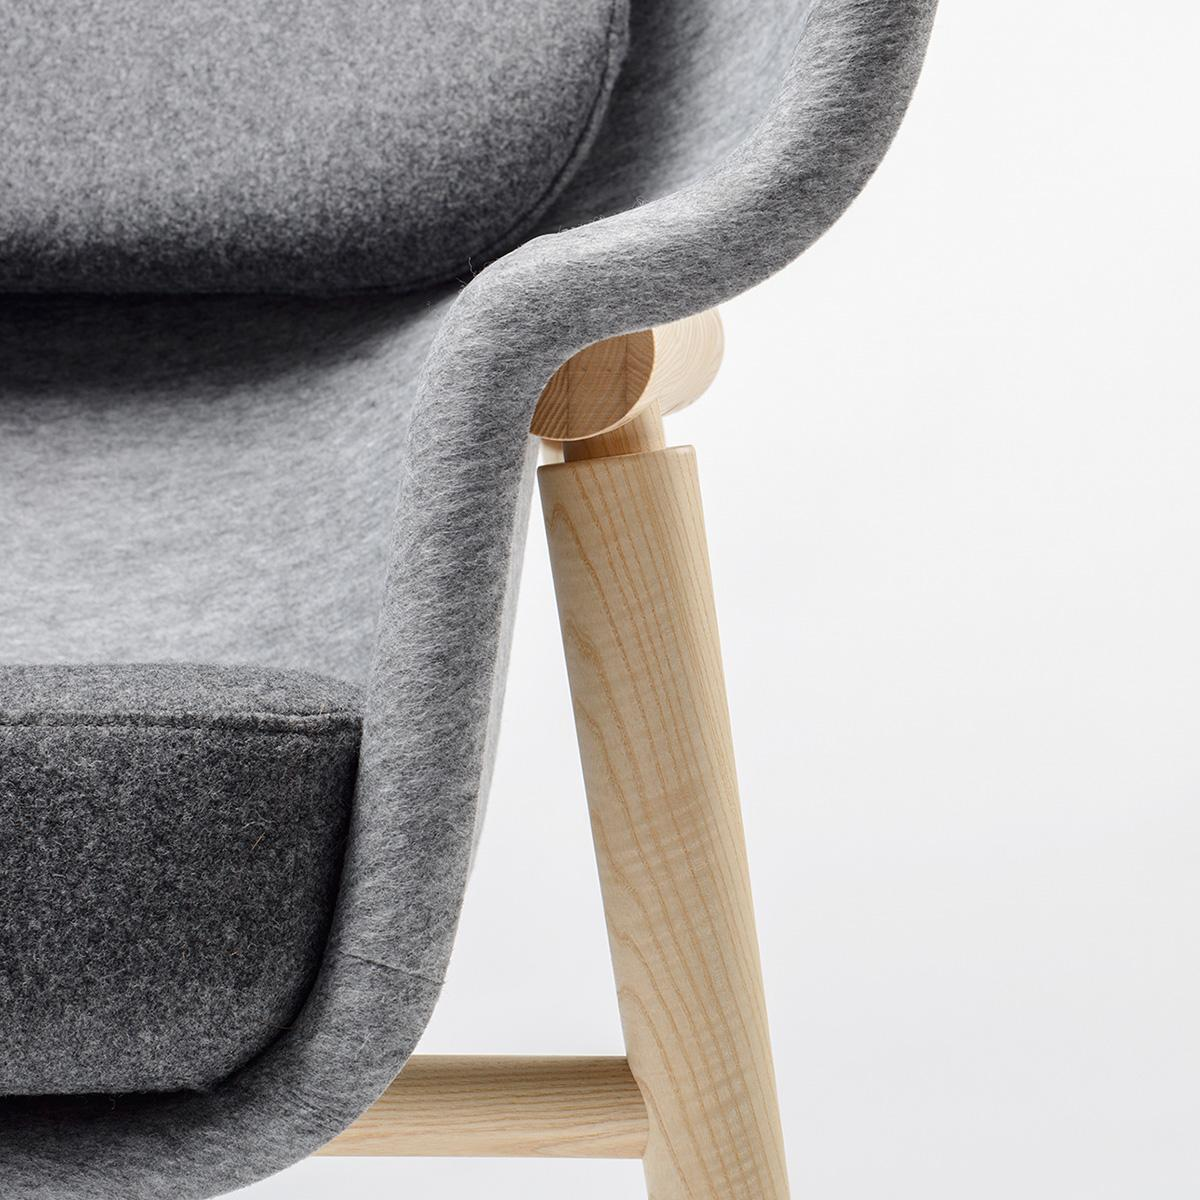 1200_0004_POD-chair-detail-De-Vorm-Benjamin-Hubert_2